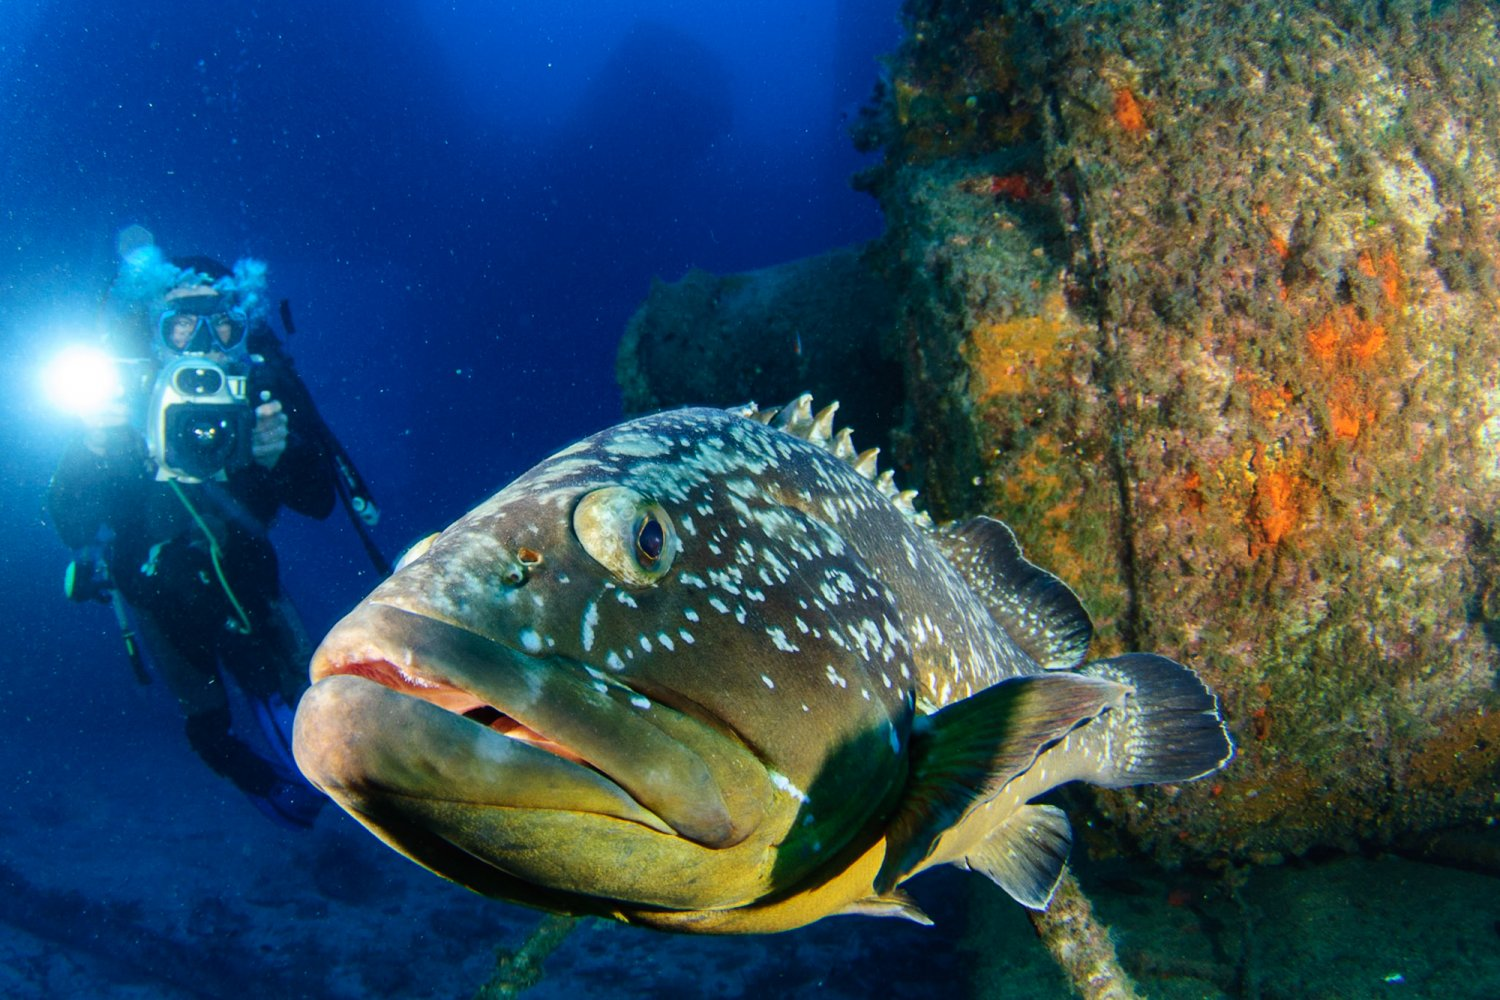 Photo © by Scuba Ibiza Diving Center